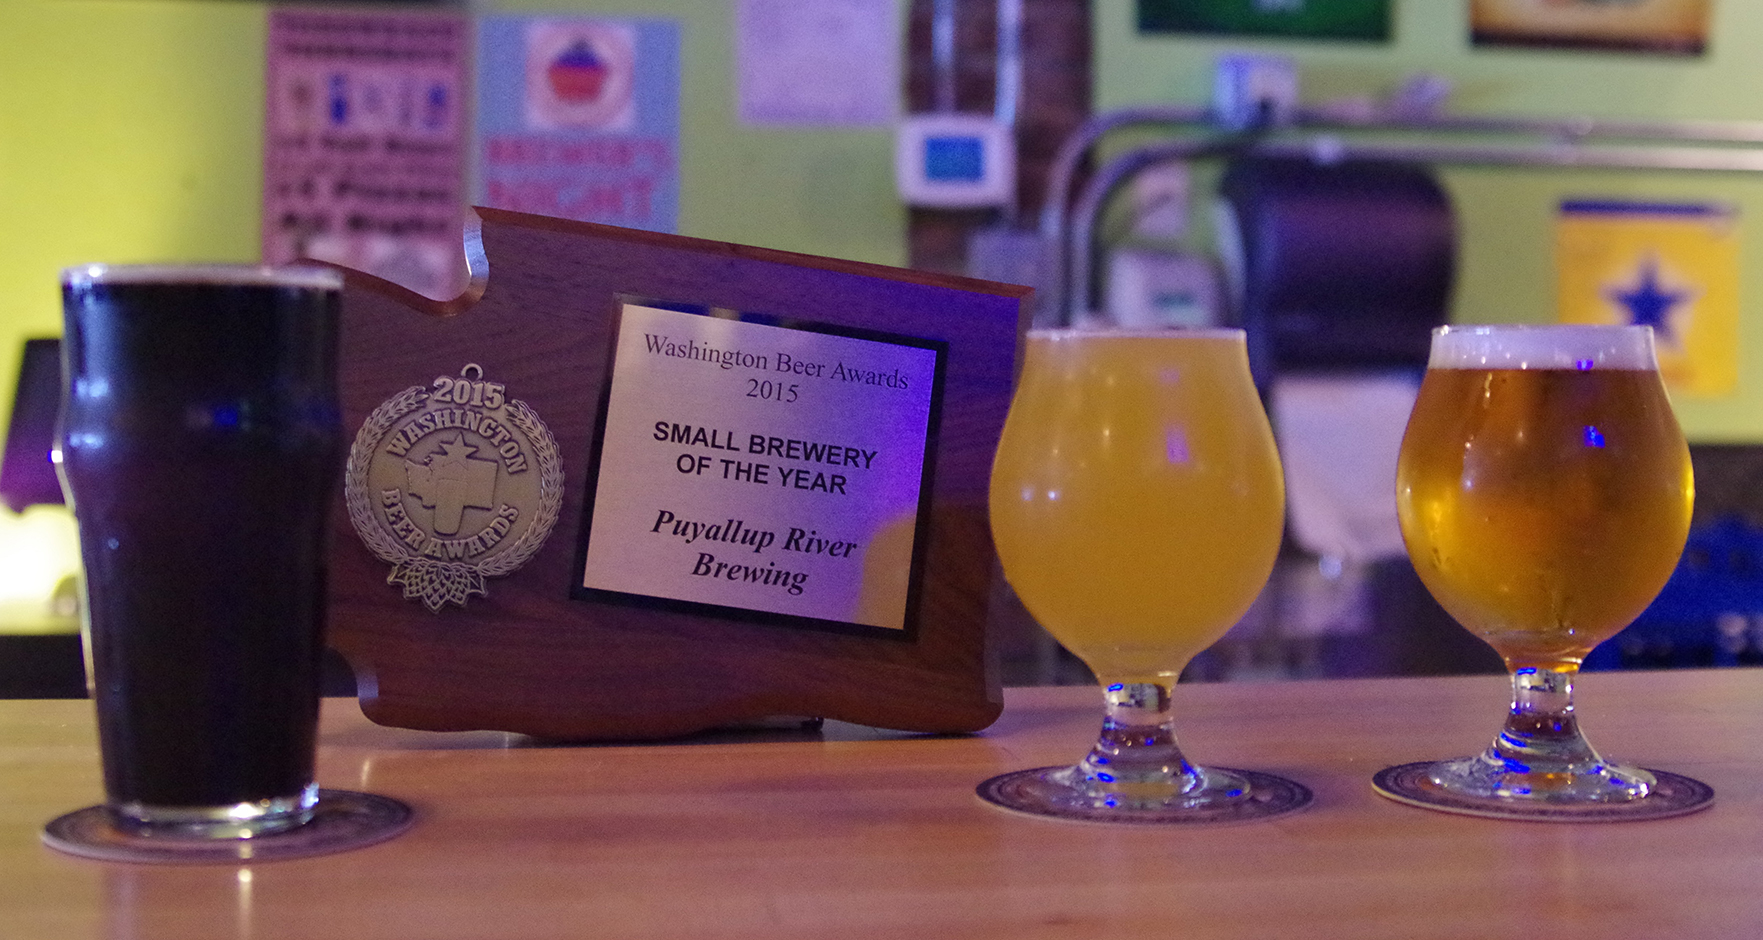 Q&A with Eric Akeson of Puyallup River Brewing - Peaks and